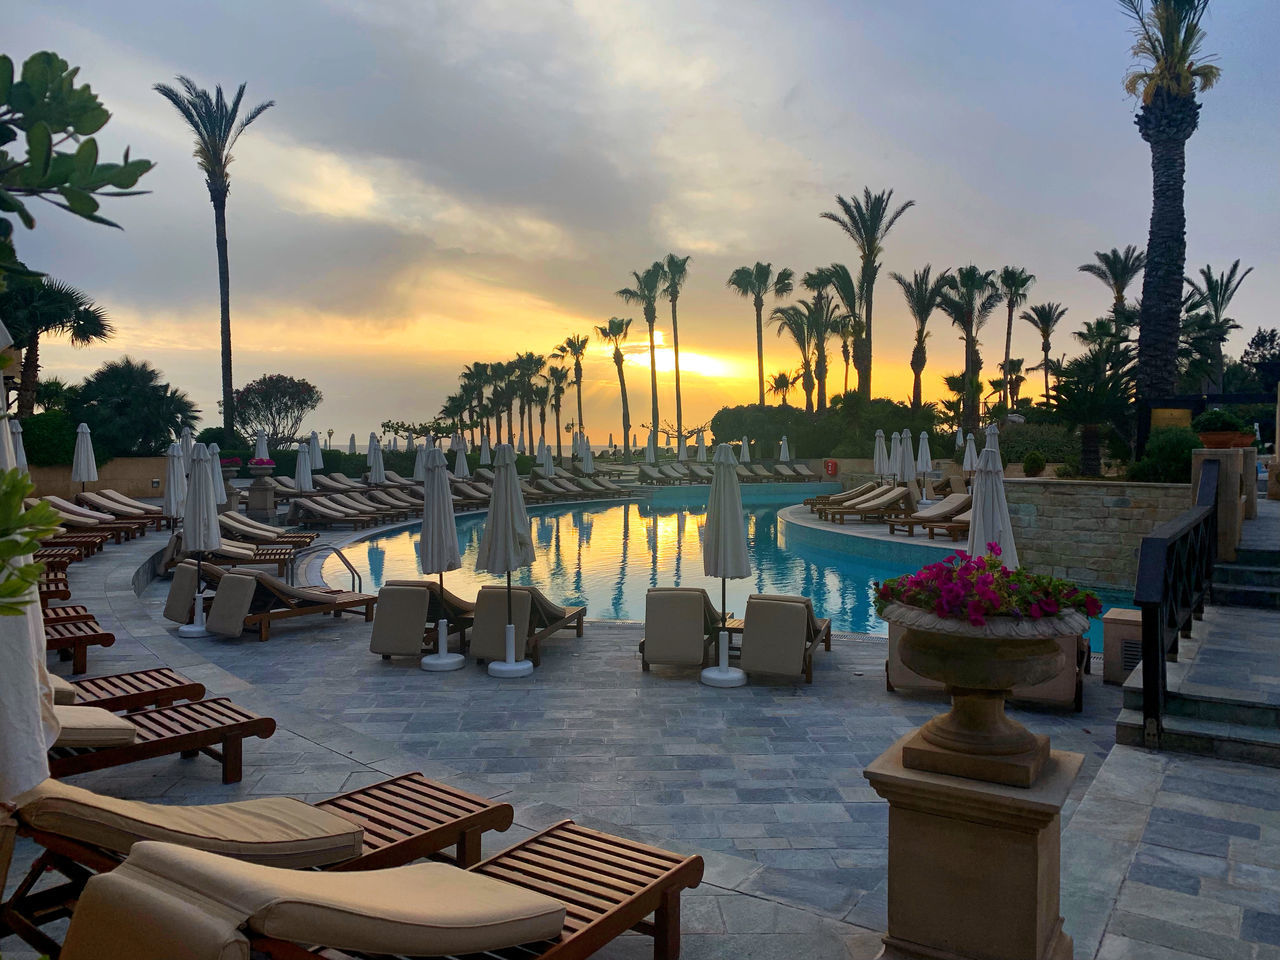 sky, water, chair, tropical climate, sunset, tree, nature, seat, plant, cloud - sky, palm tree, swimming pool, table, pool, no people, beauty in nature, tourist resort, tranquility, sea, outdoors, setting